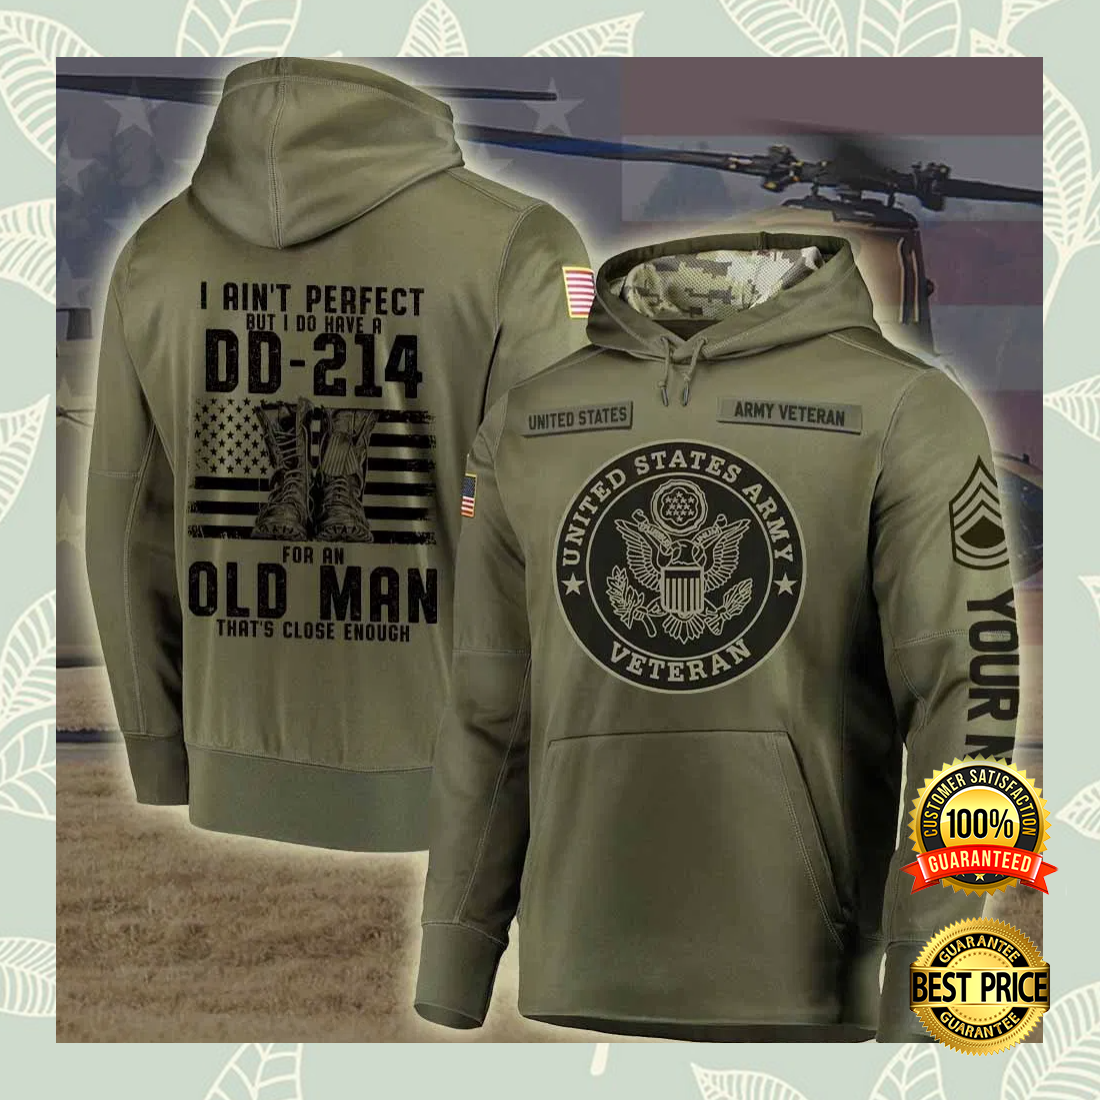 Personalized US Army i ain't perfect but i do have a dd 214 for an old man all over printed 3D hoodie 4